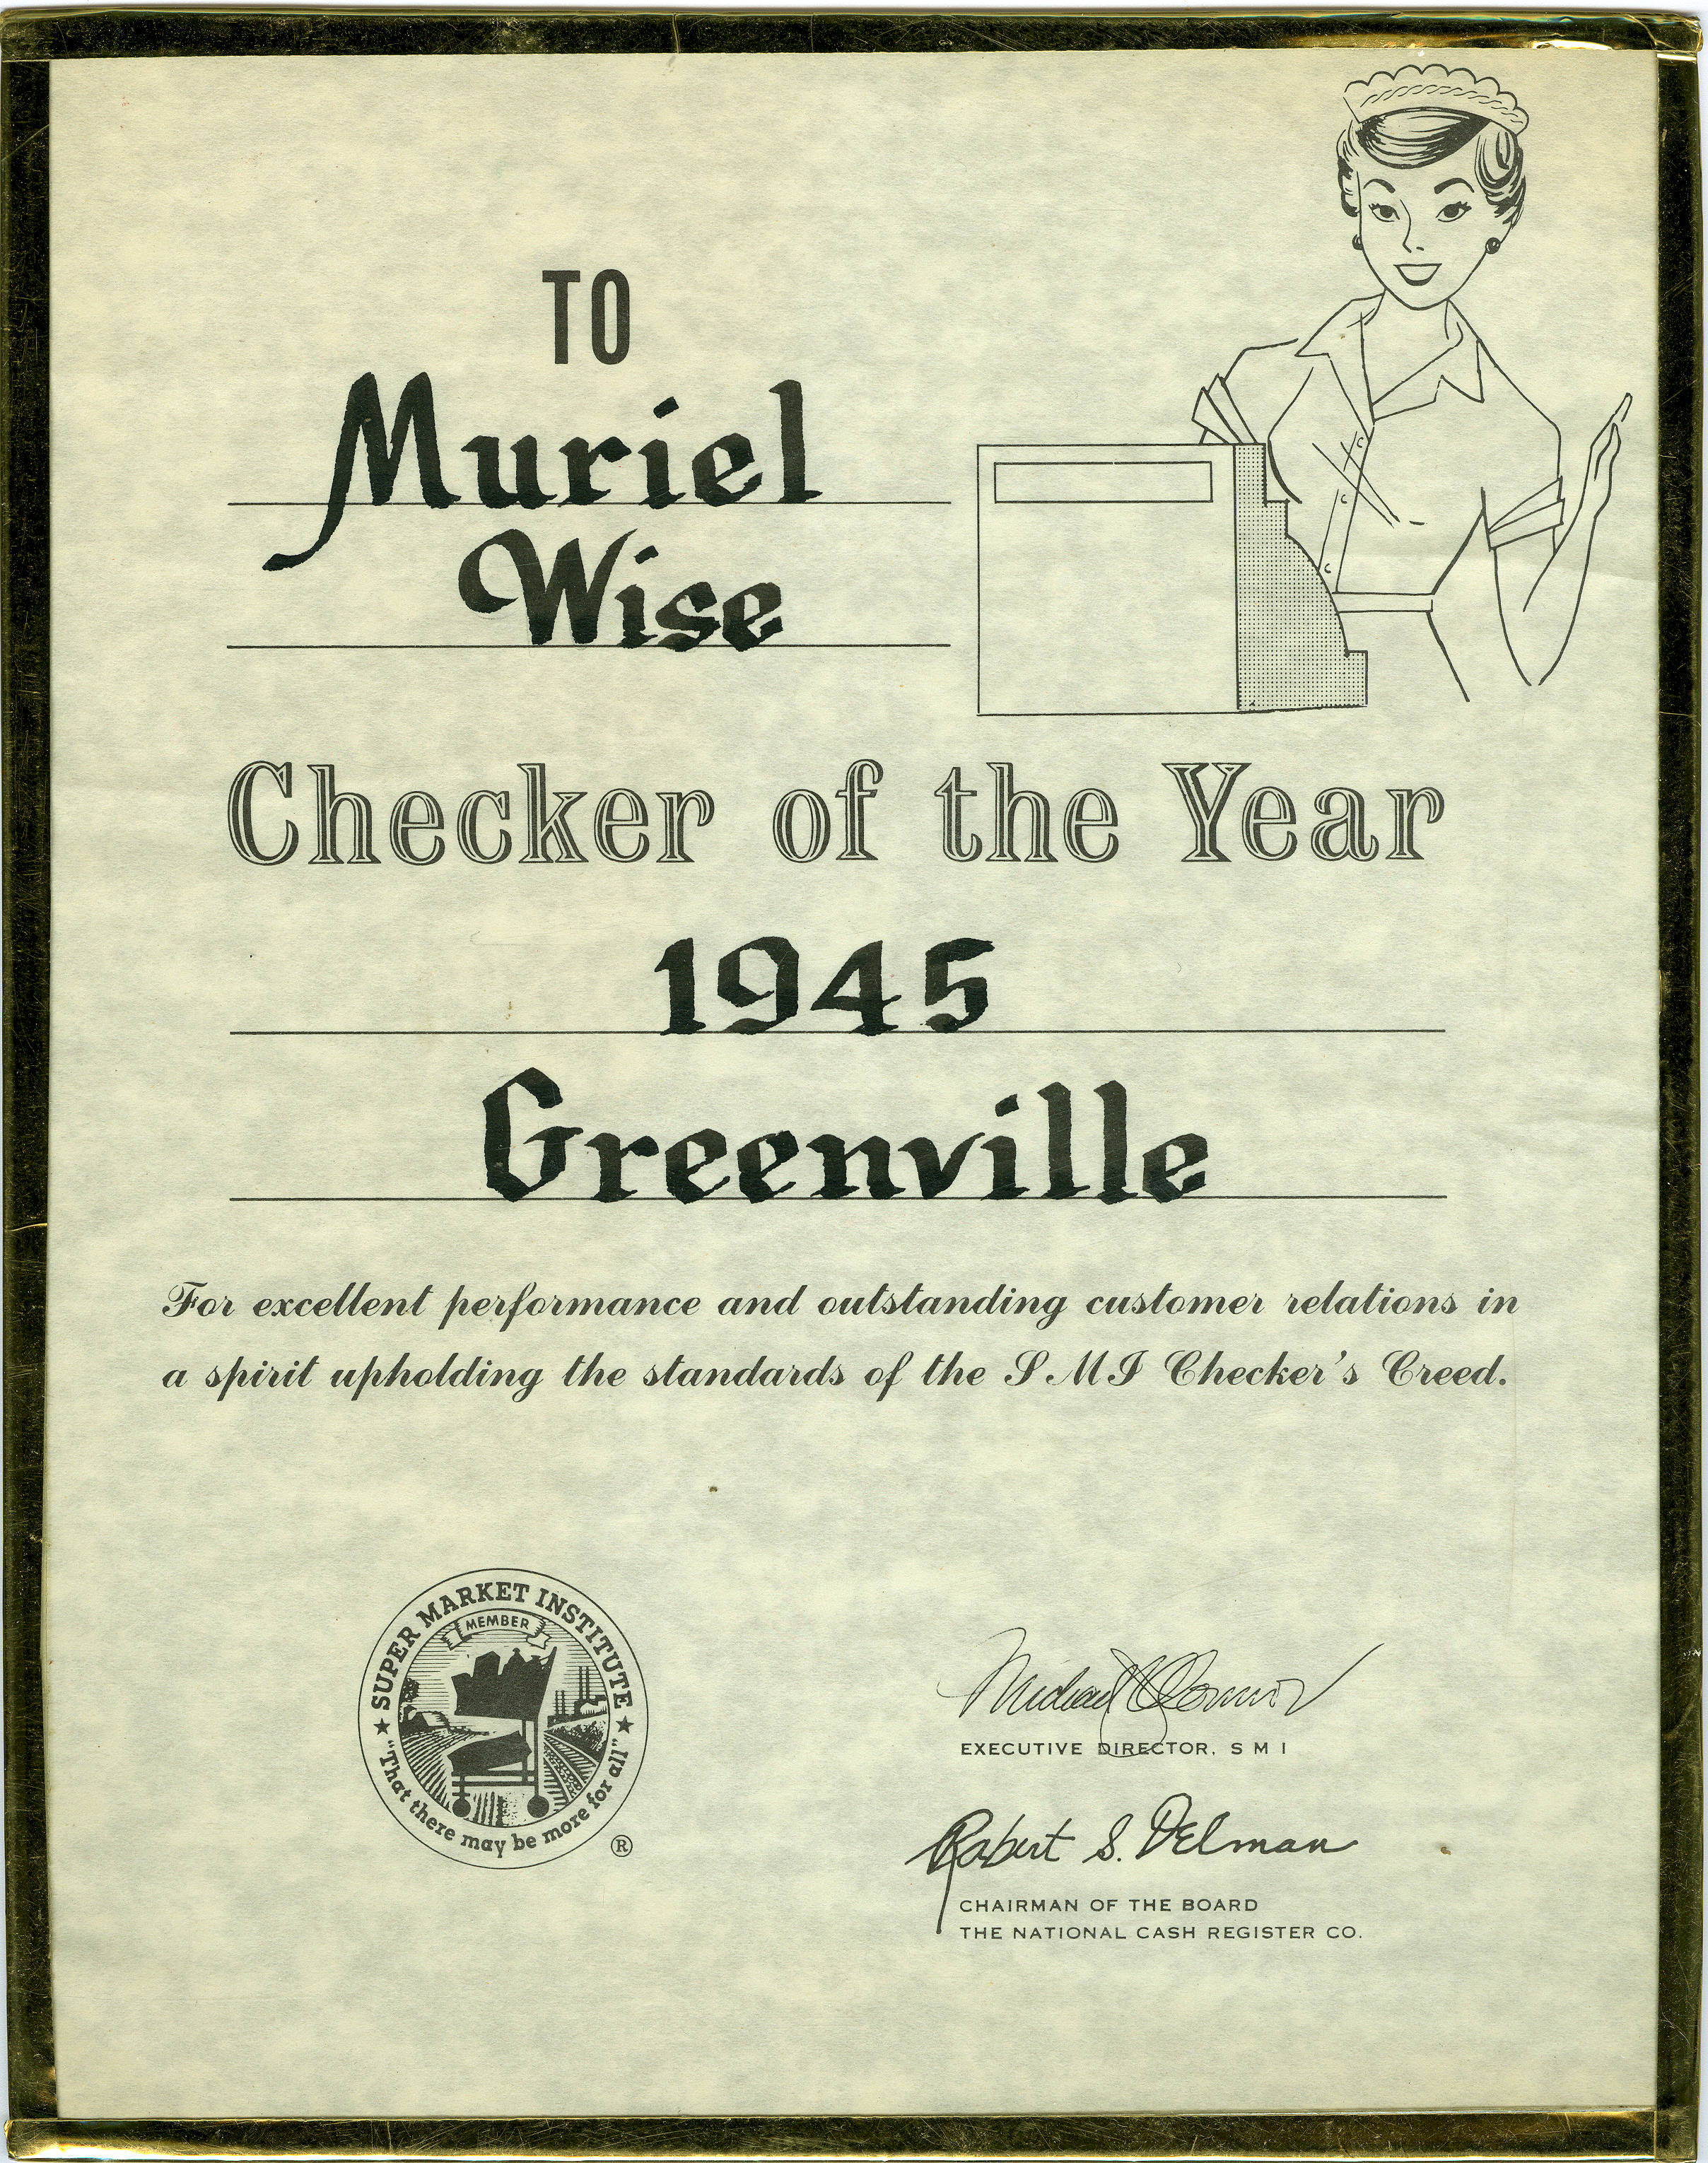 Muriel Wise-Checker of the Year 19450001.jpg